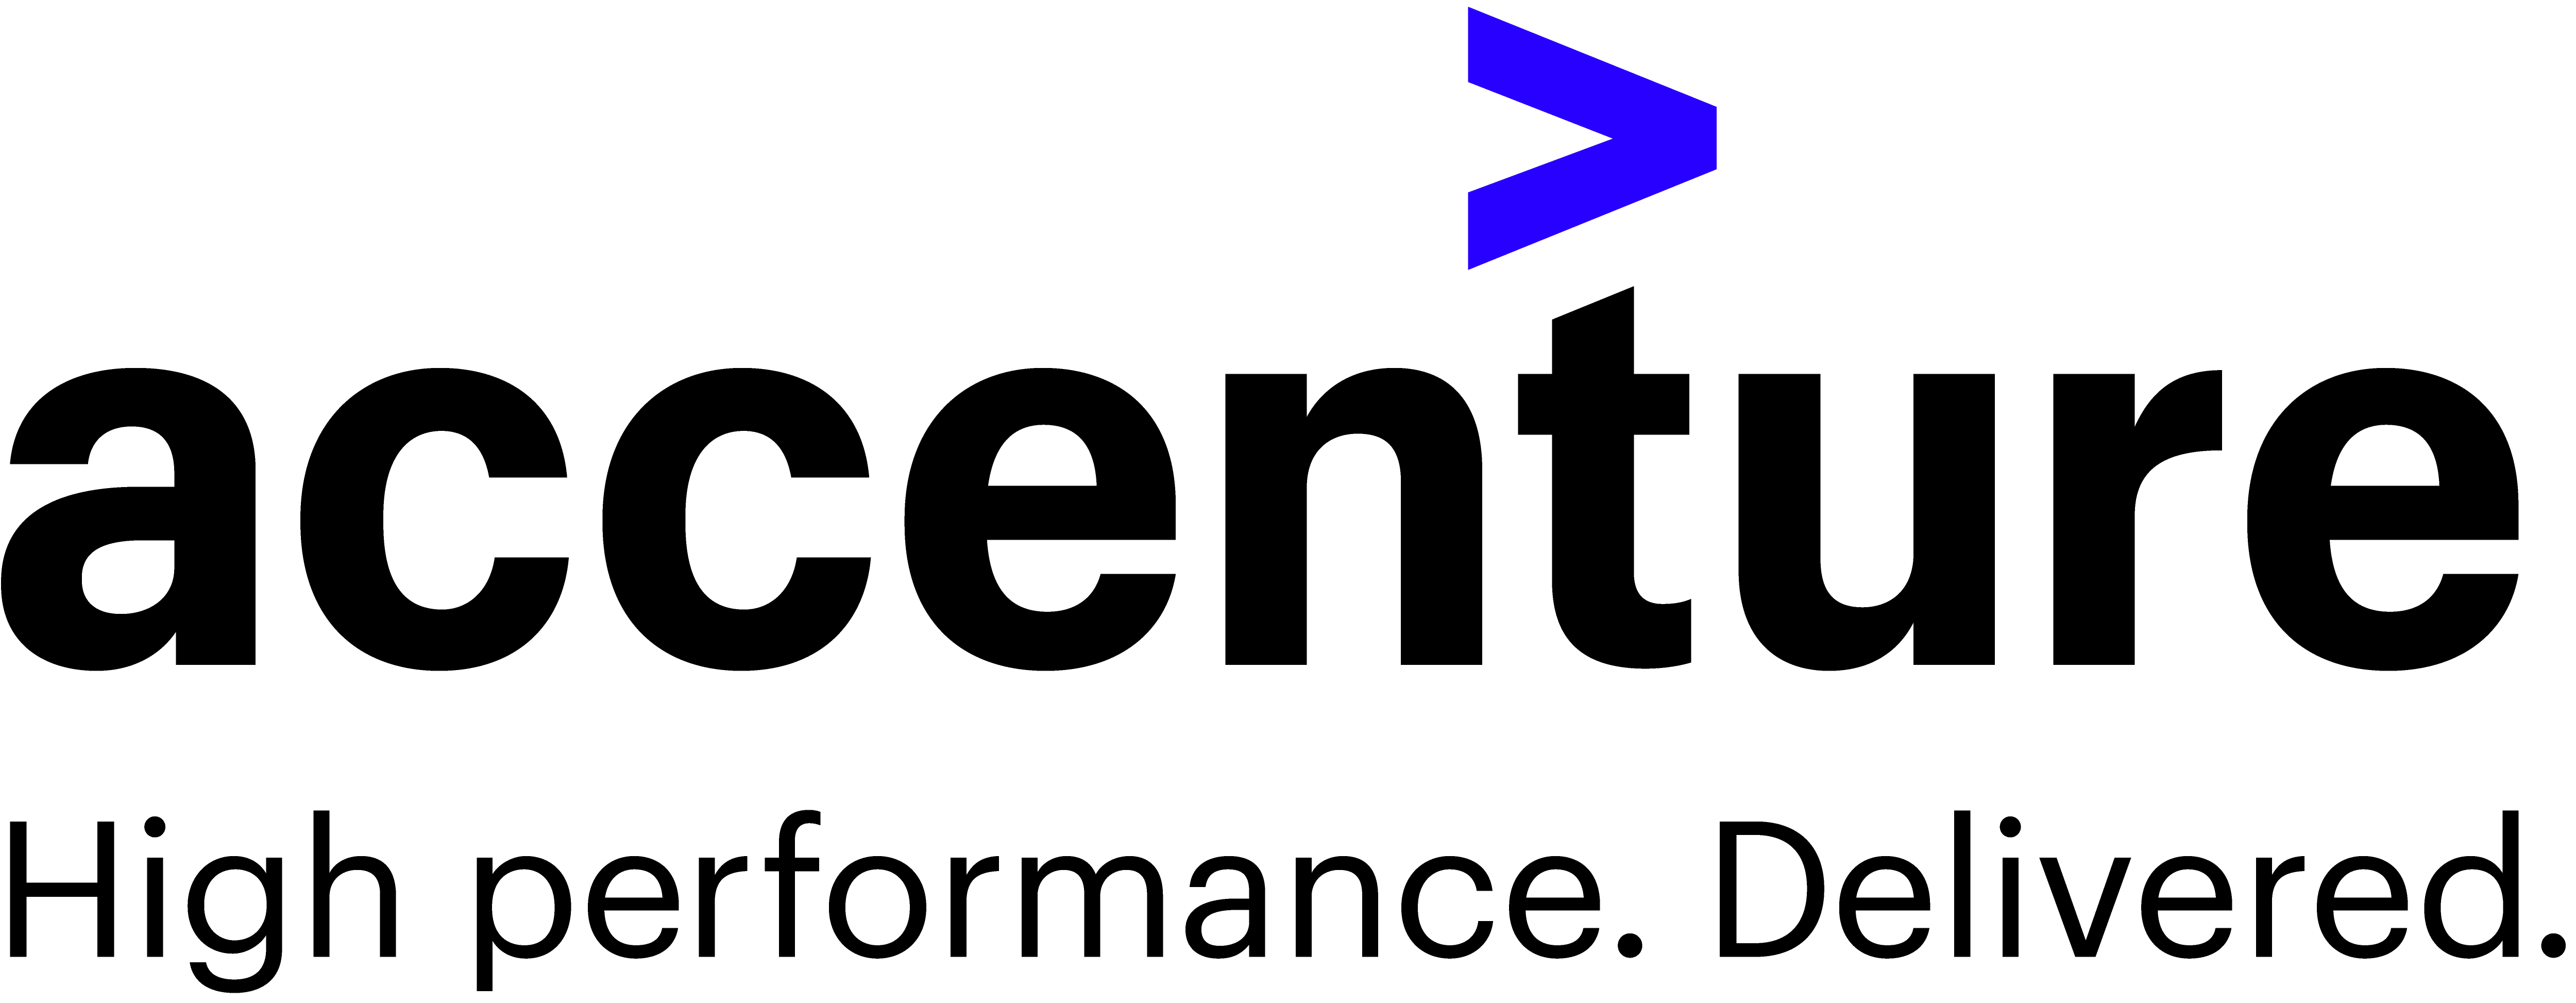 Accenture-red-arrow-logo-180x80.png